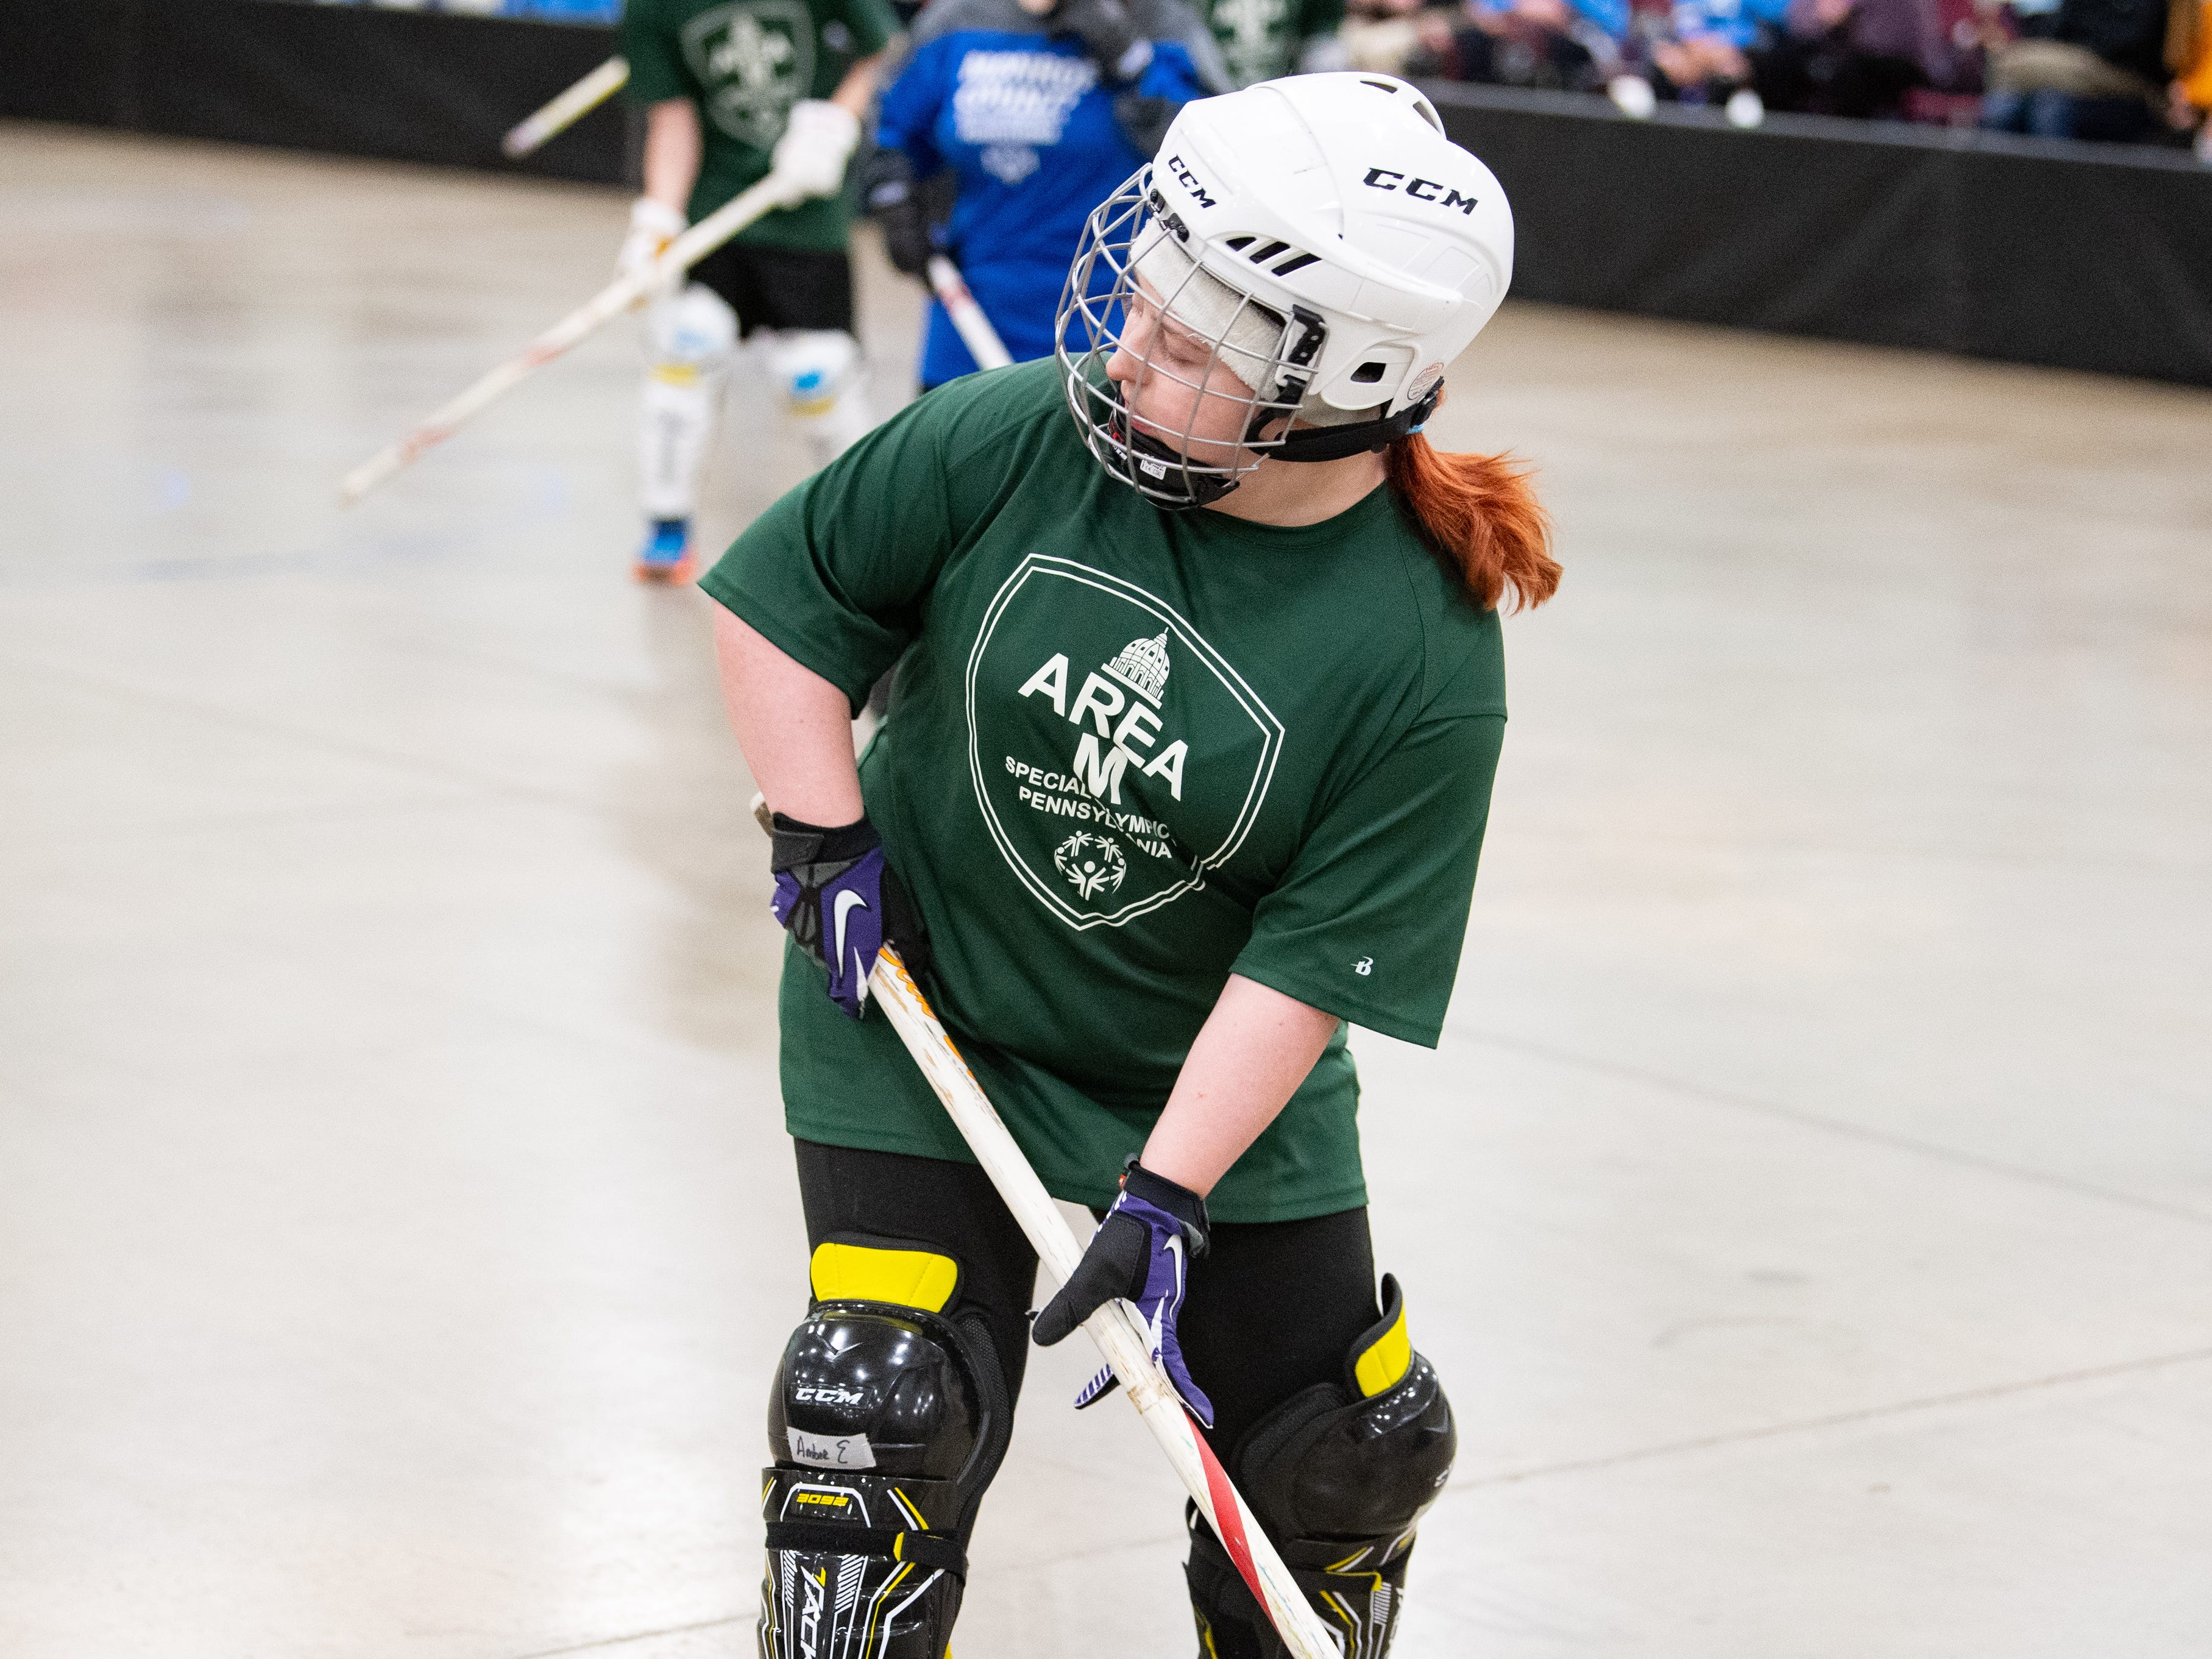 The floor hockey preliminaries are held in the York Expo Center where there's plenty of space to move, March 2, 2019.